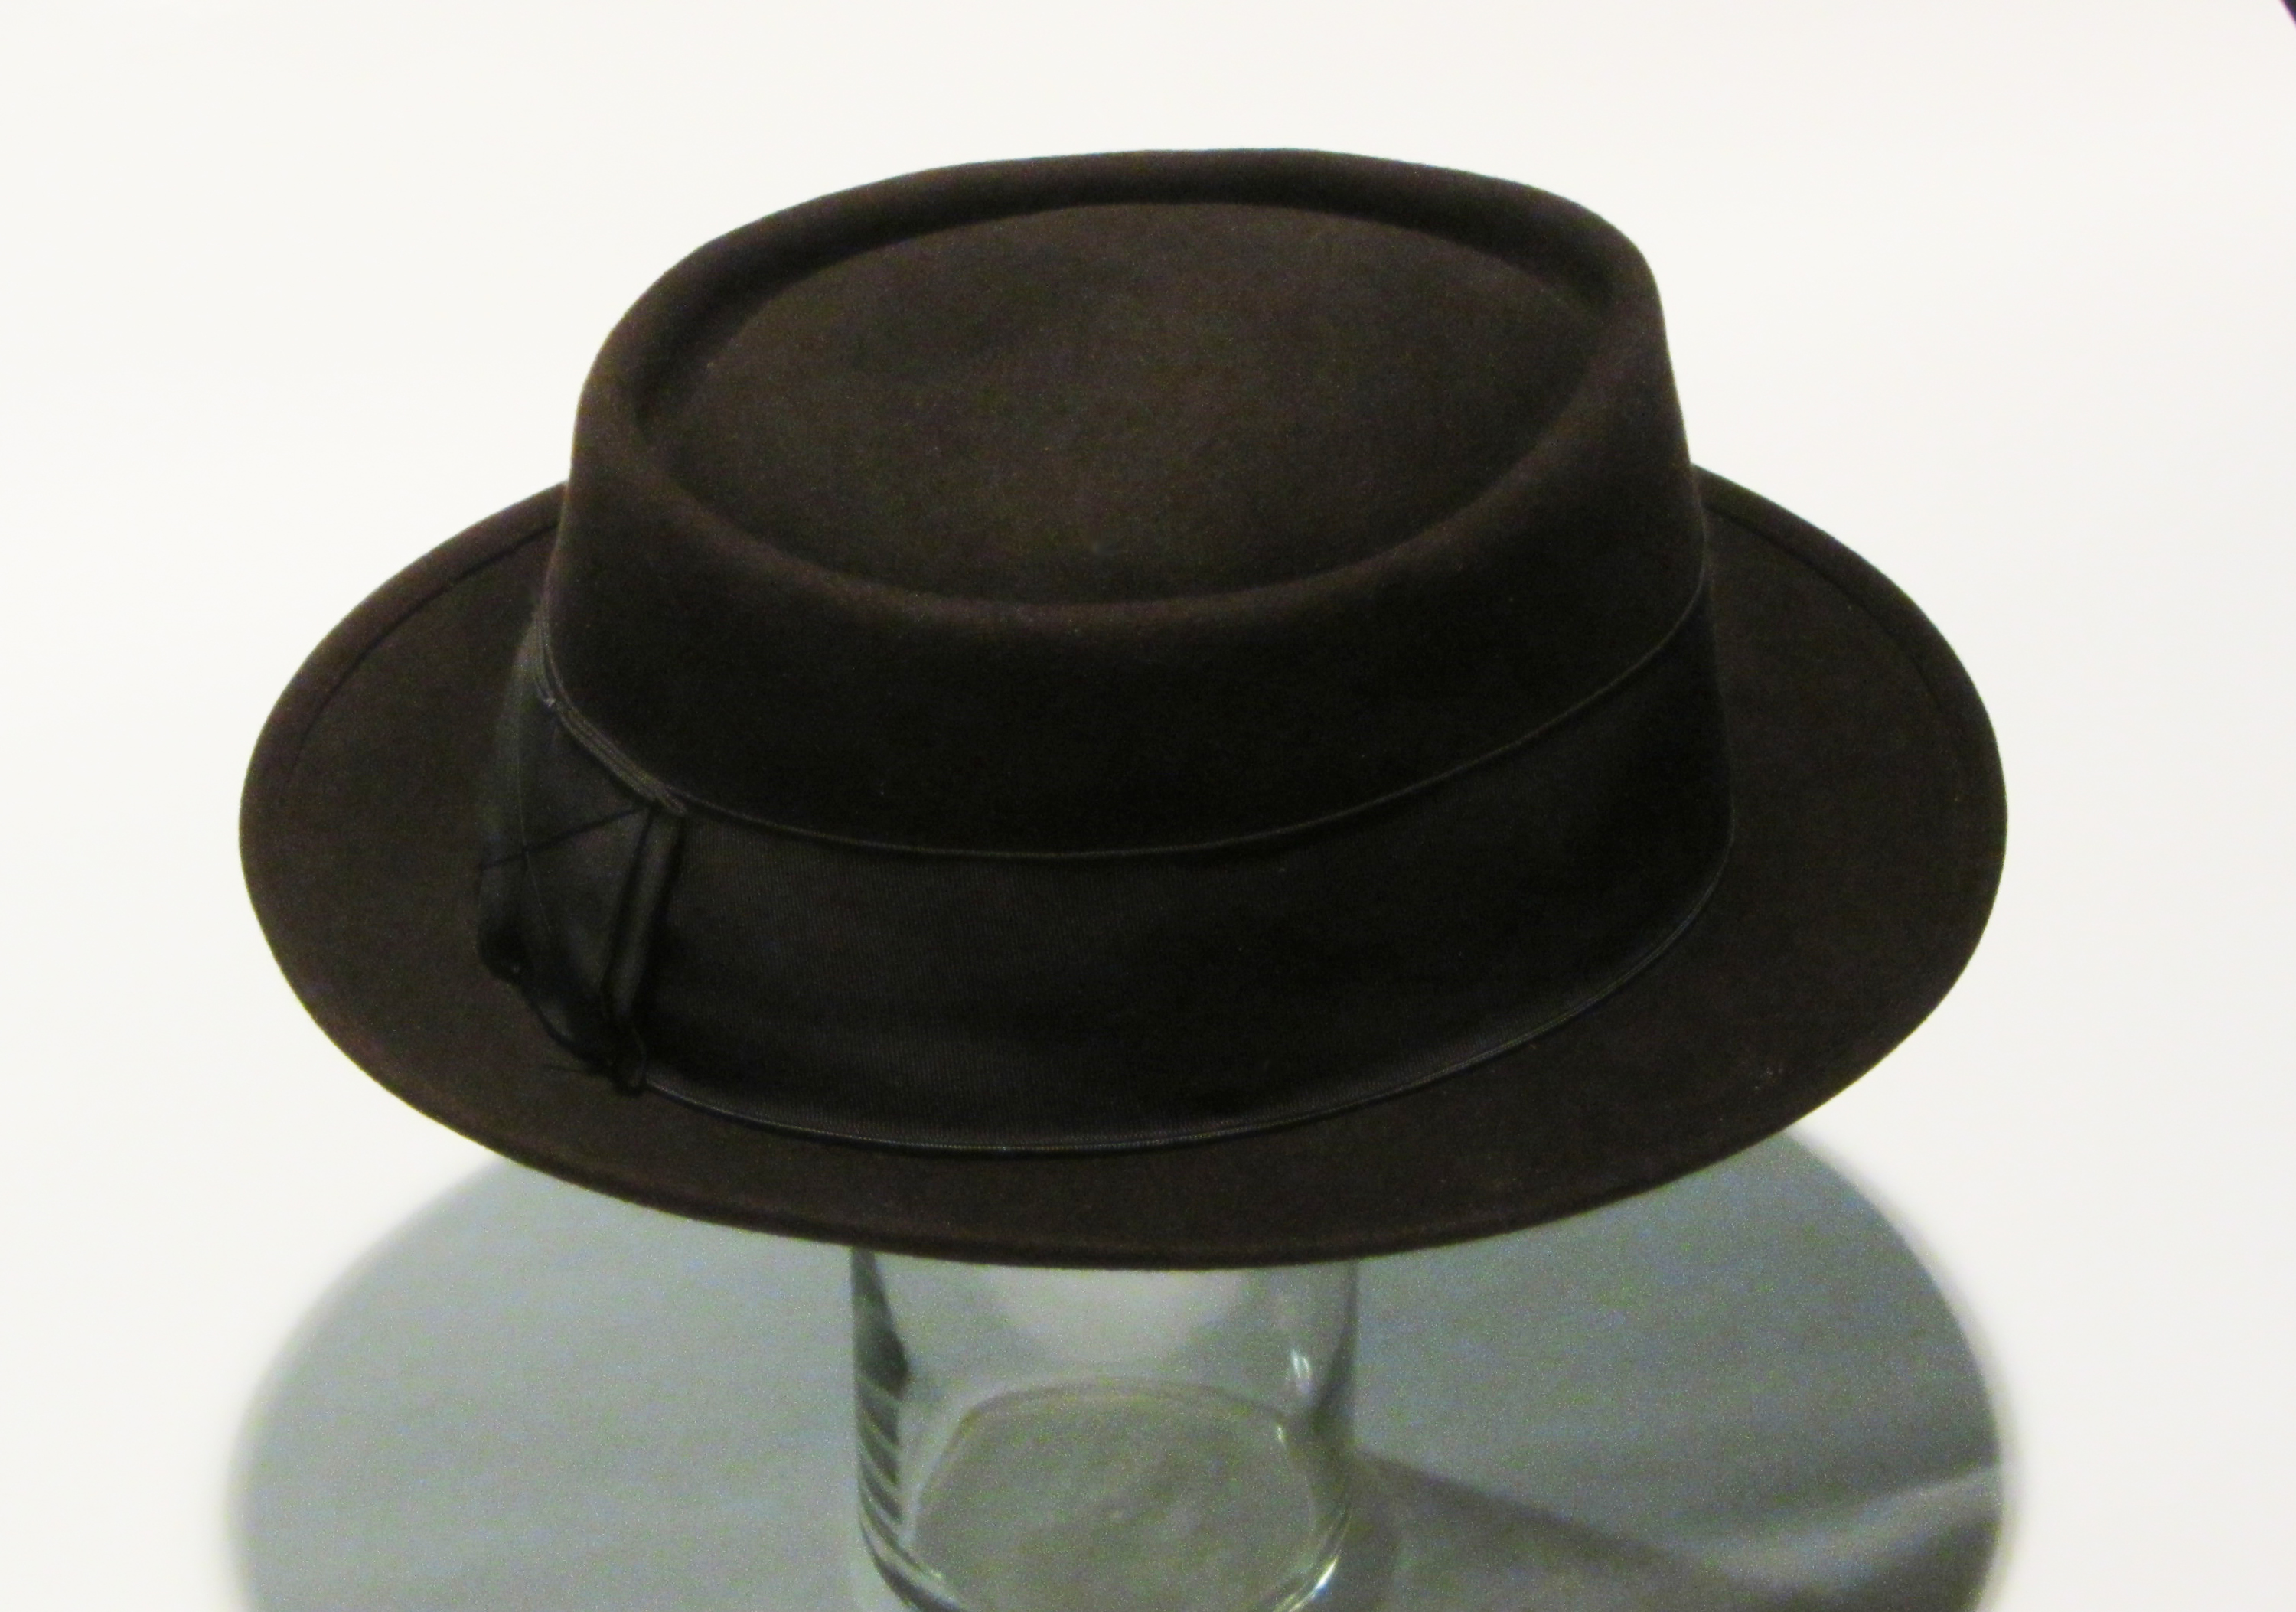 Pork pie hat - Wikipedia 0d95d4d7011a